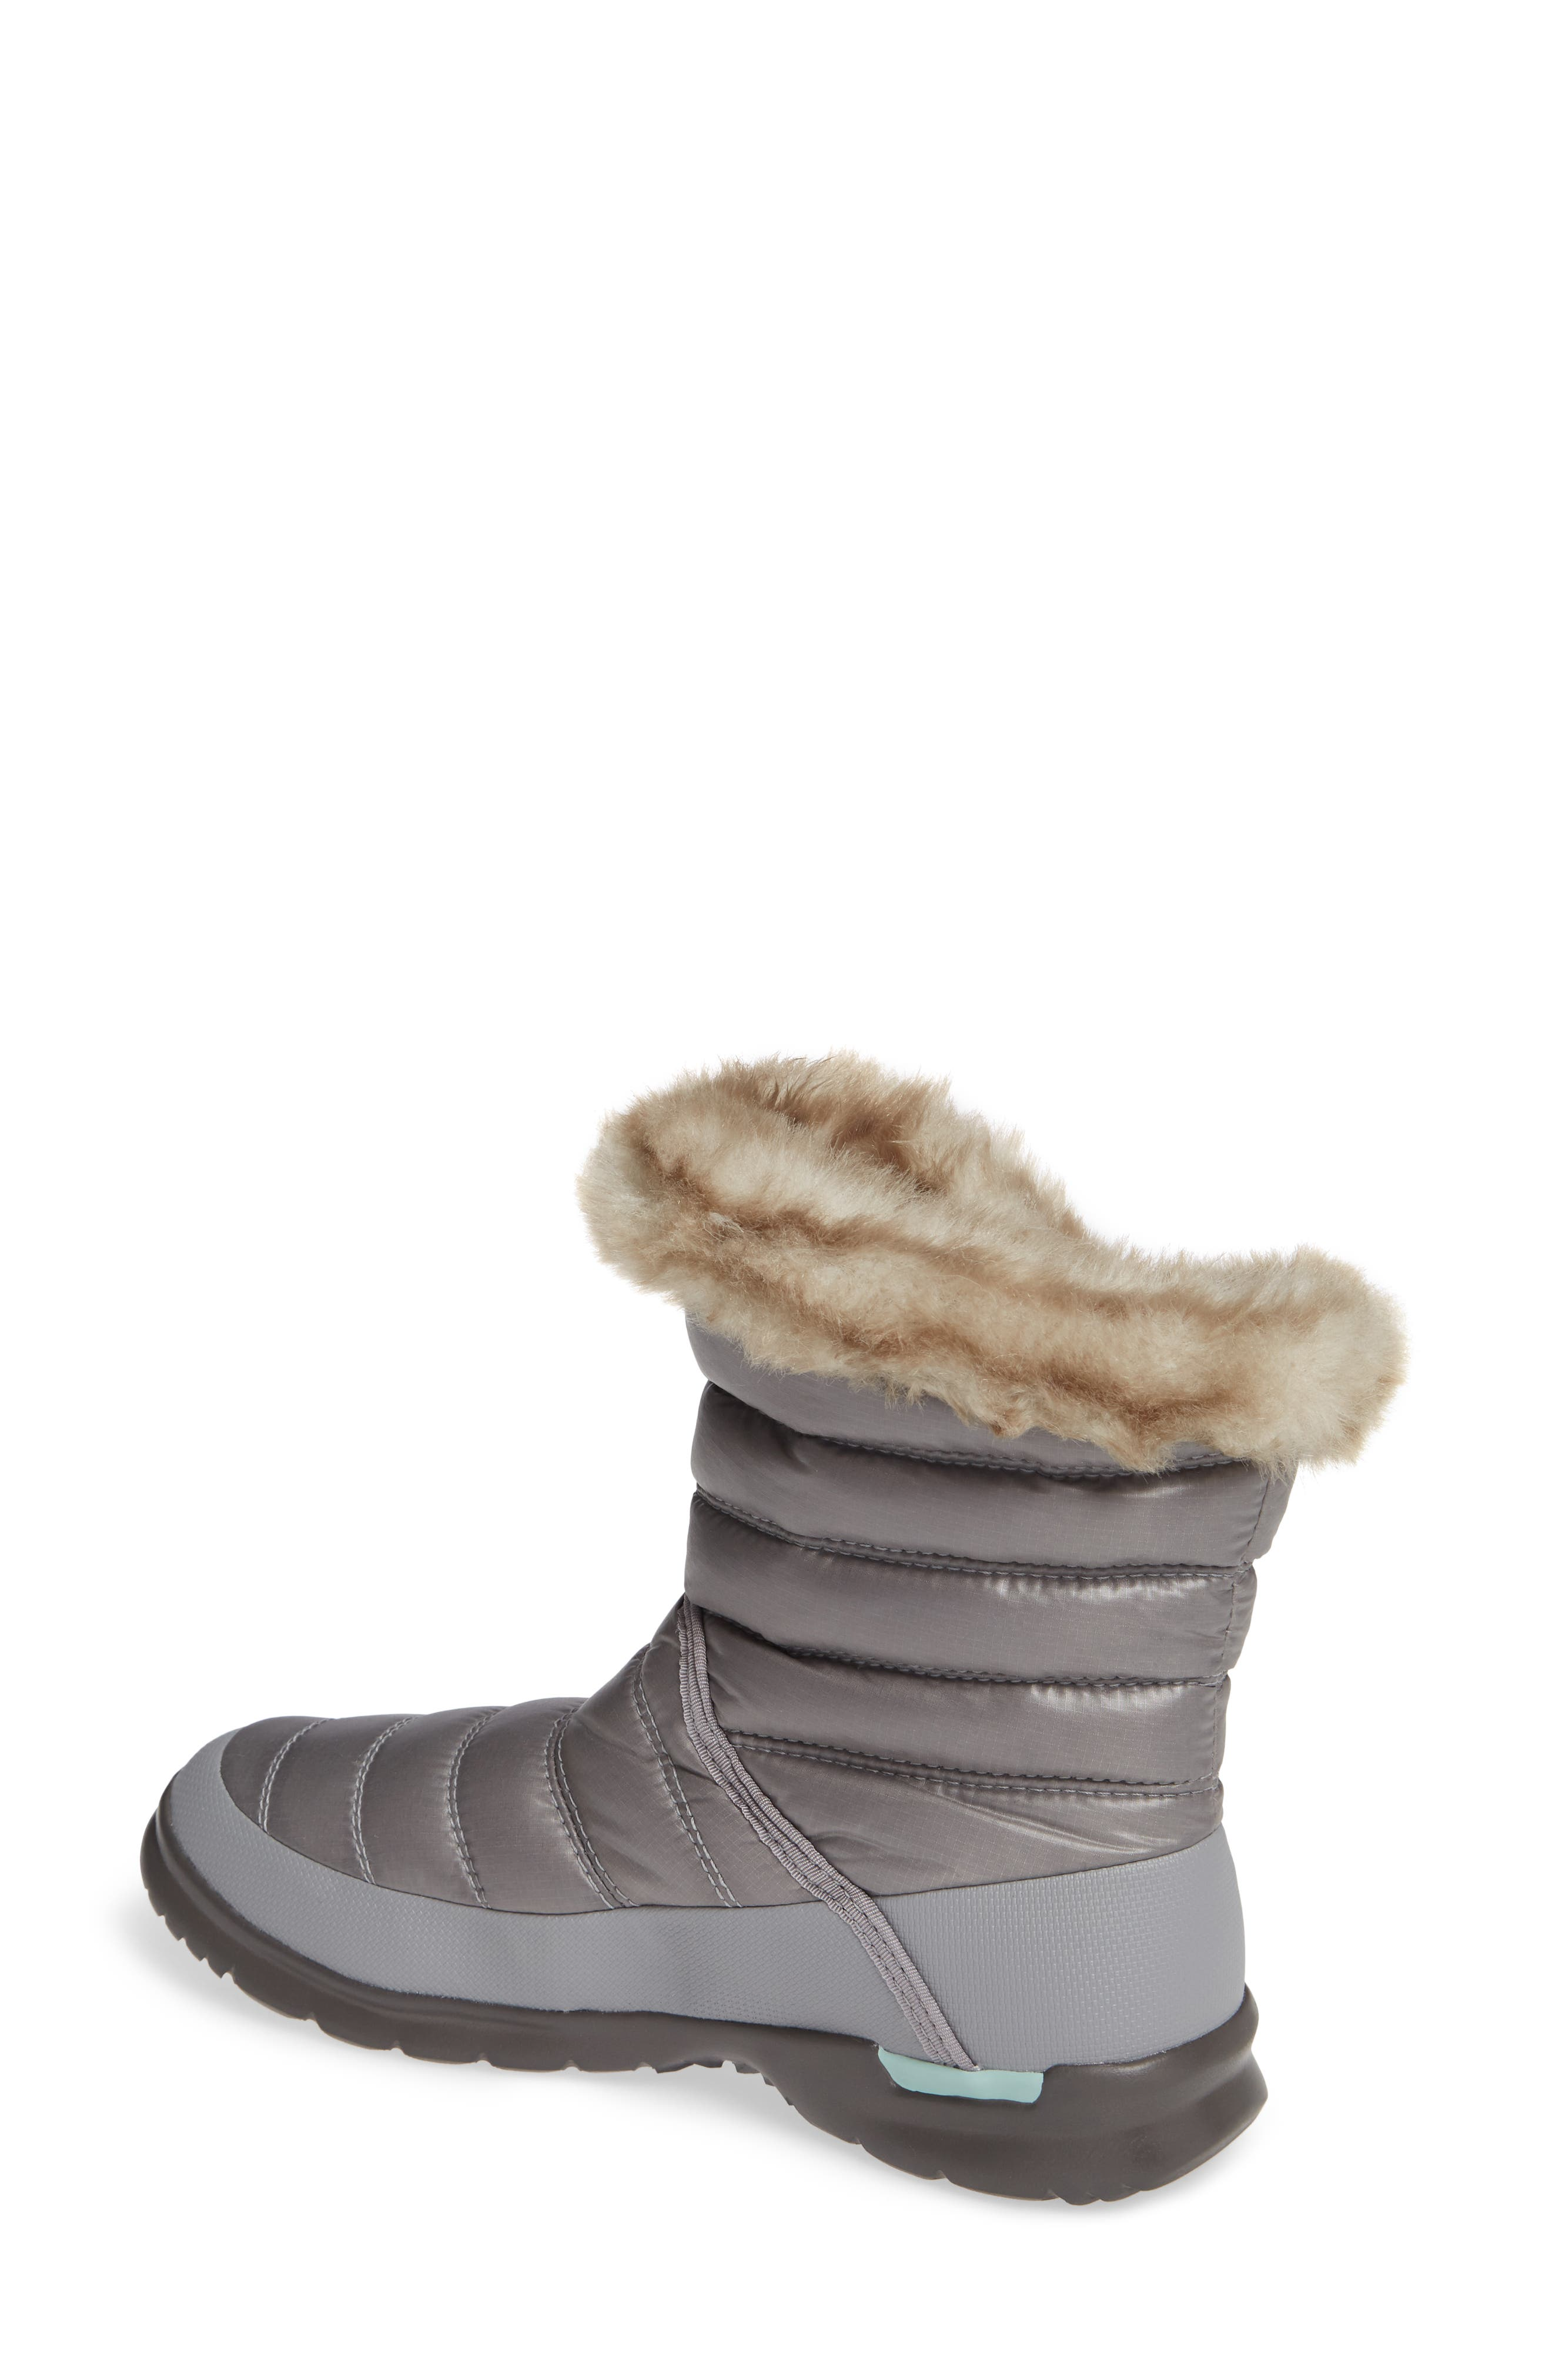 ,                             Microbaffle Waterproof ThermoBall<sup>®</sup> Insulated Winter Boot,                             Alternate thumbnail 2, color,                             SHINY FROST GREY/ BLUE HAZE